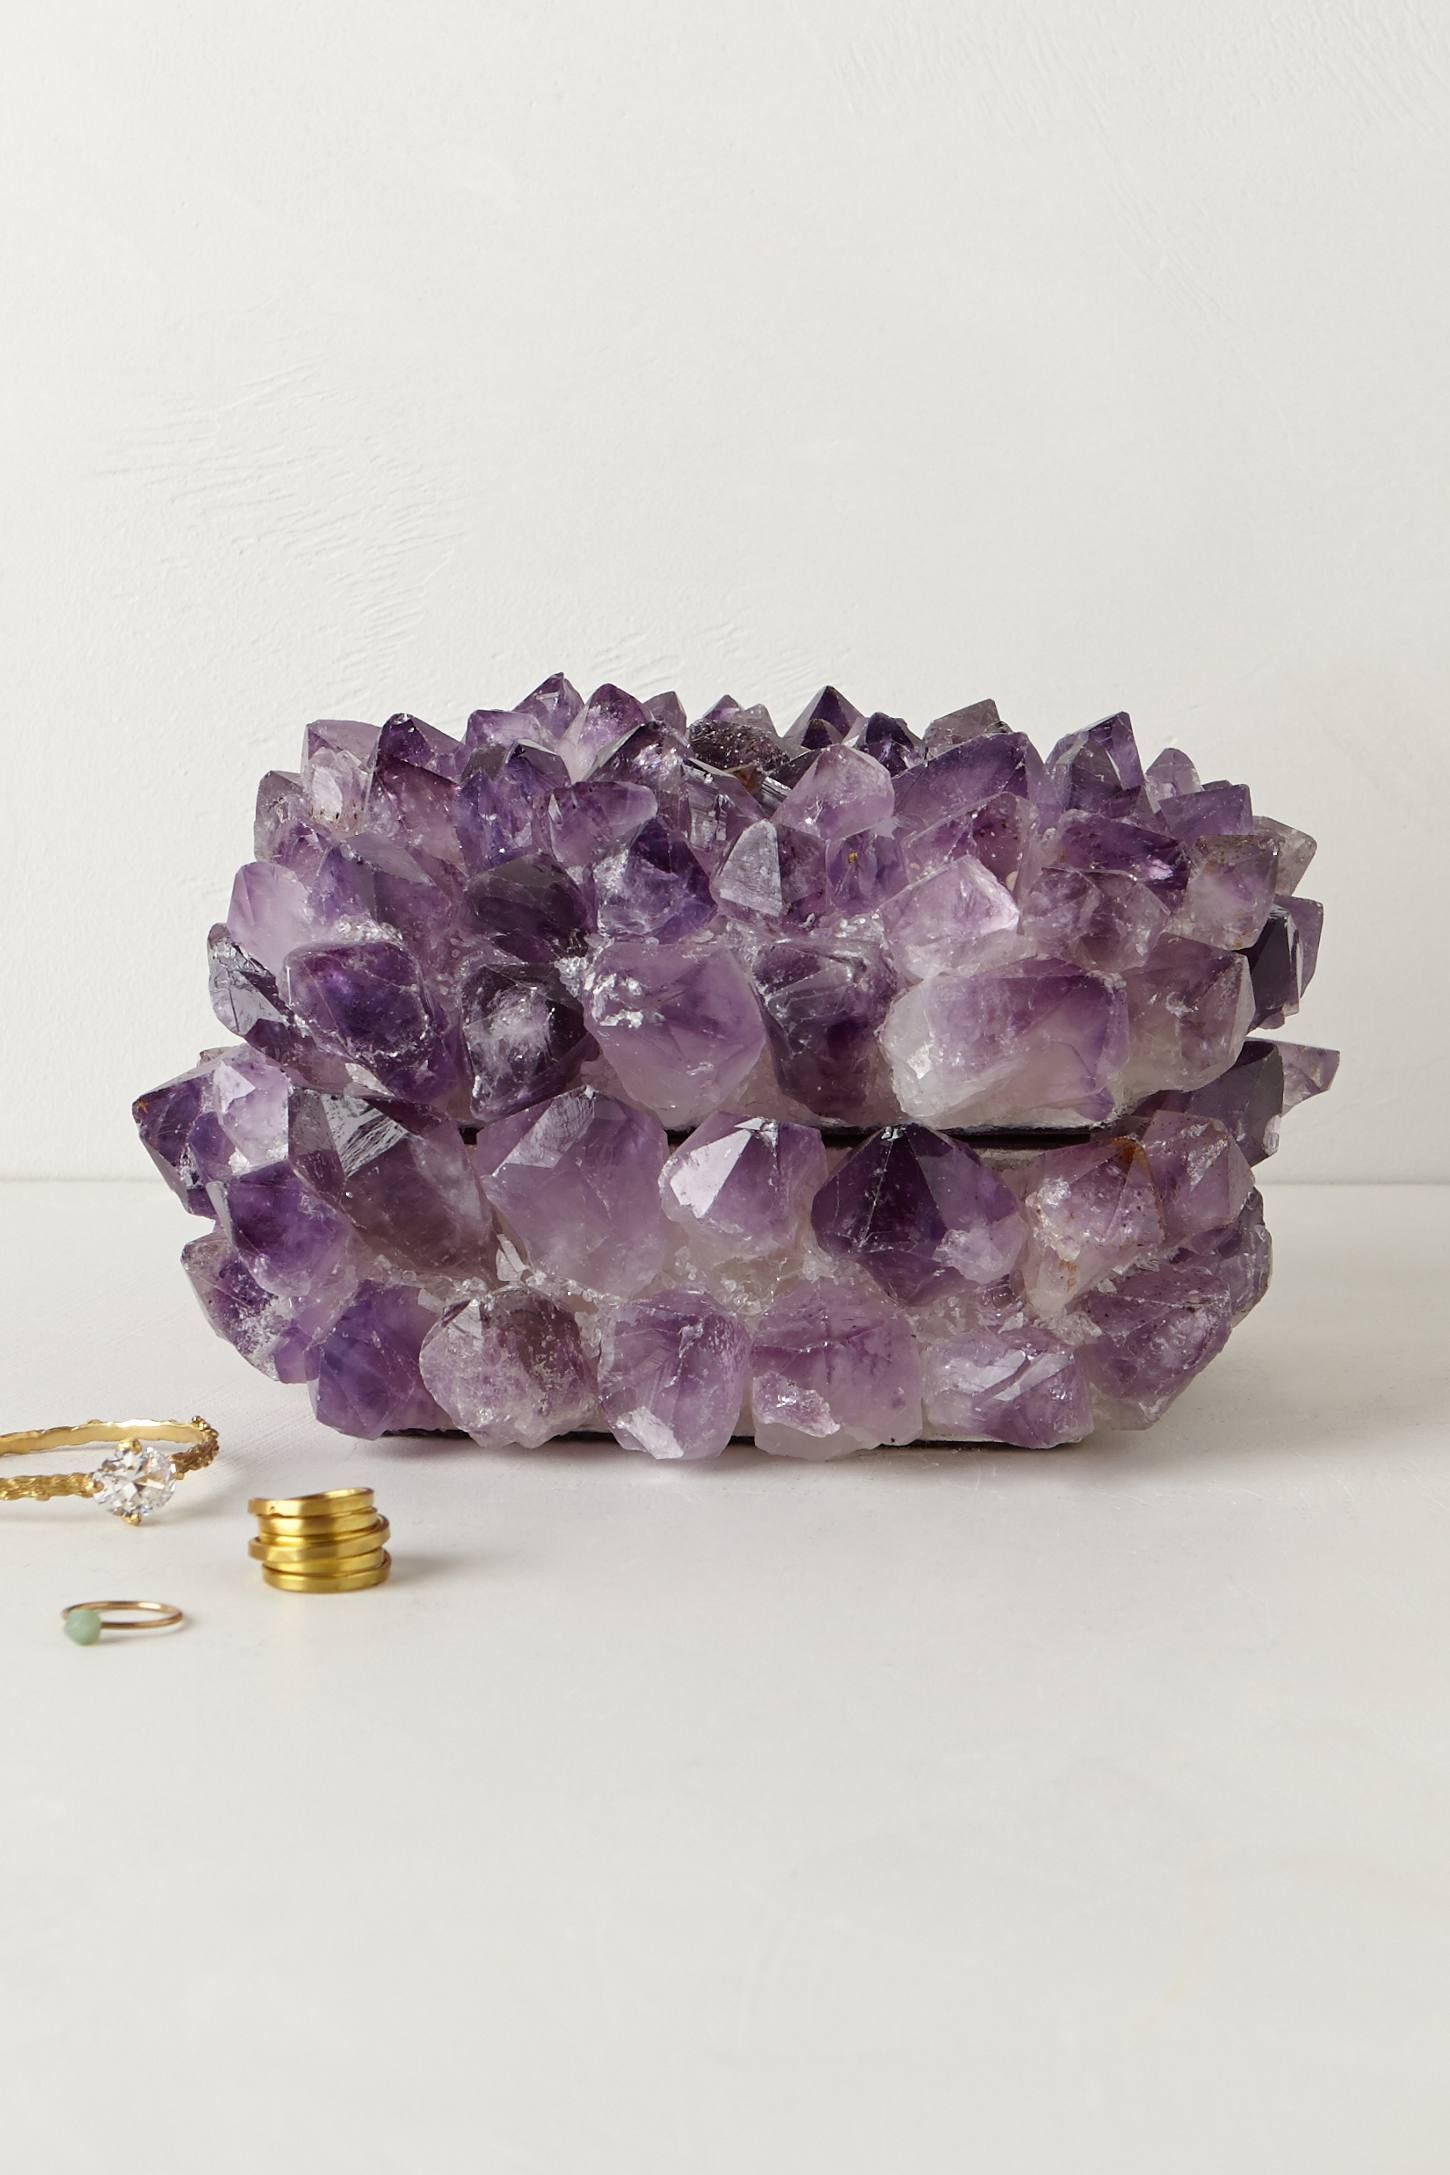 Amethyst Stone Jewelry Box - anthropologie.com Anyone who is rich wanna get me this? ;)